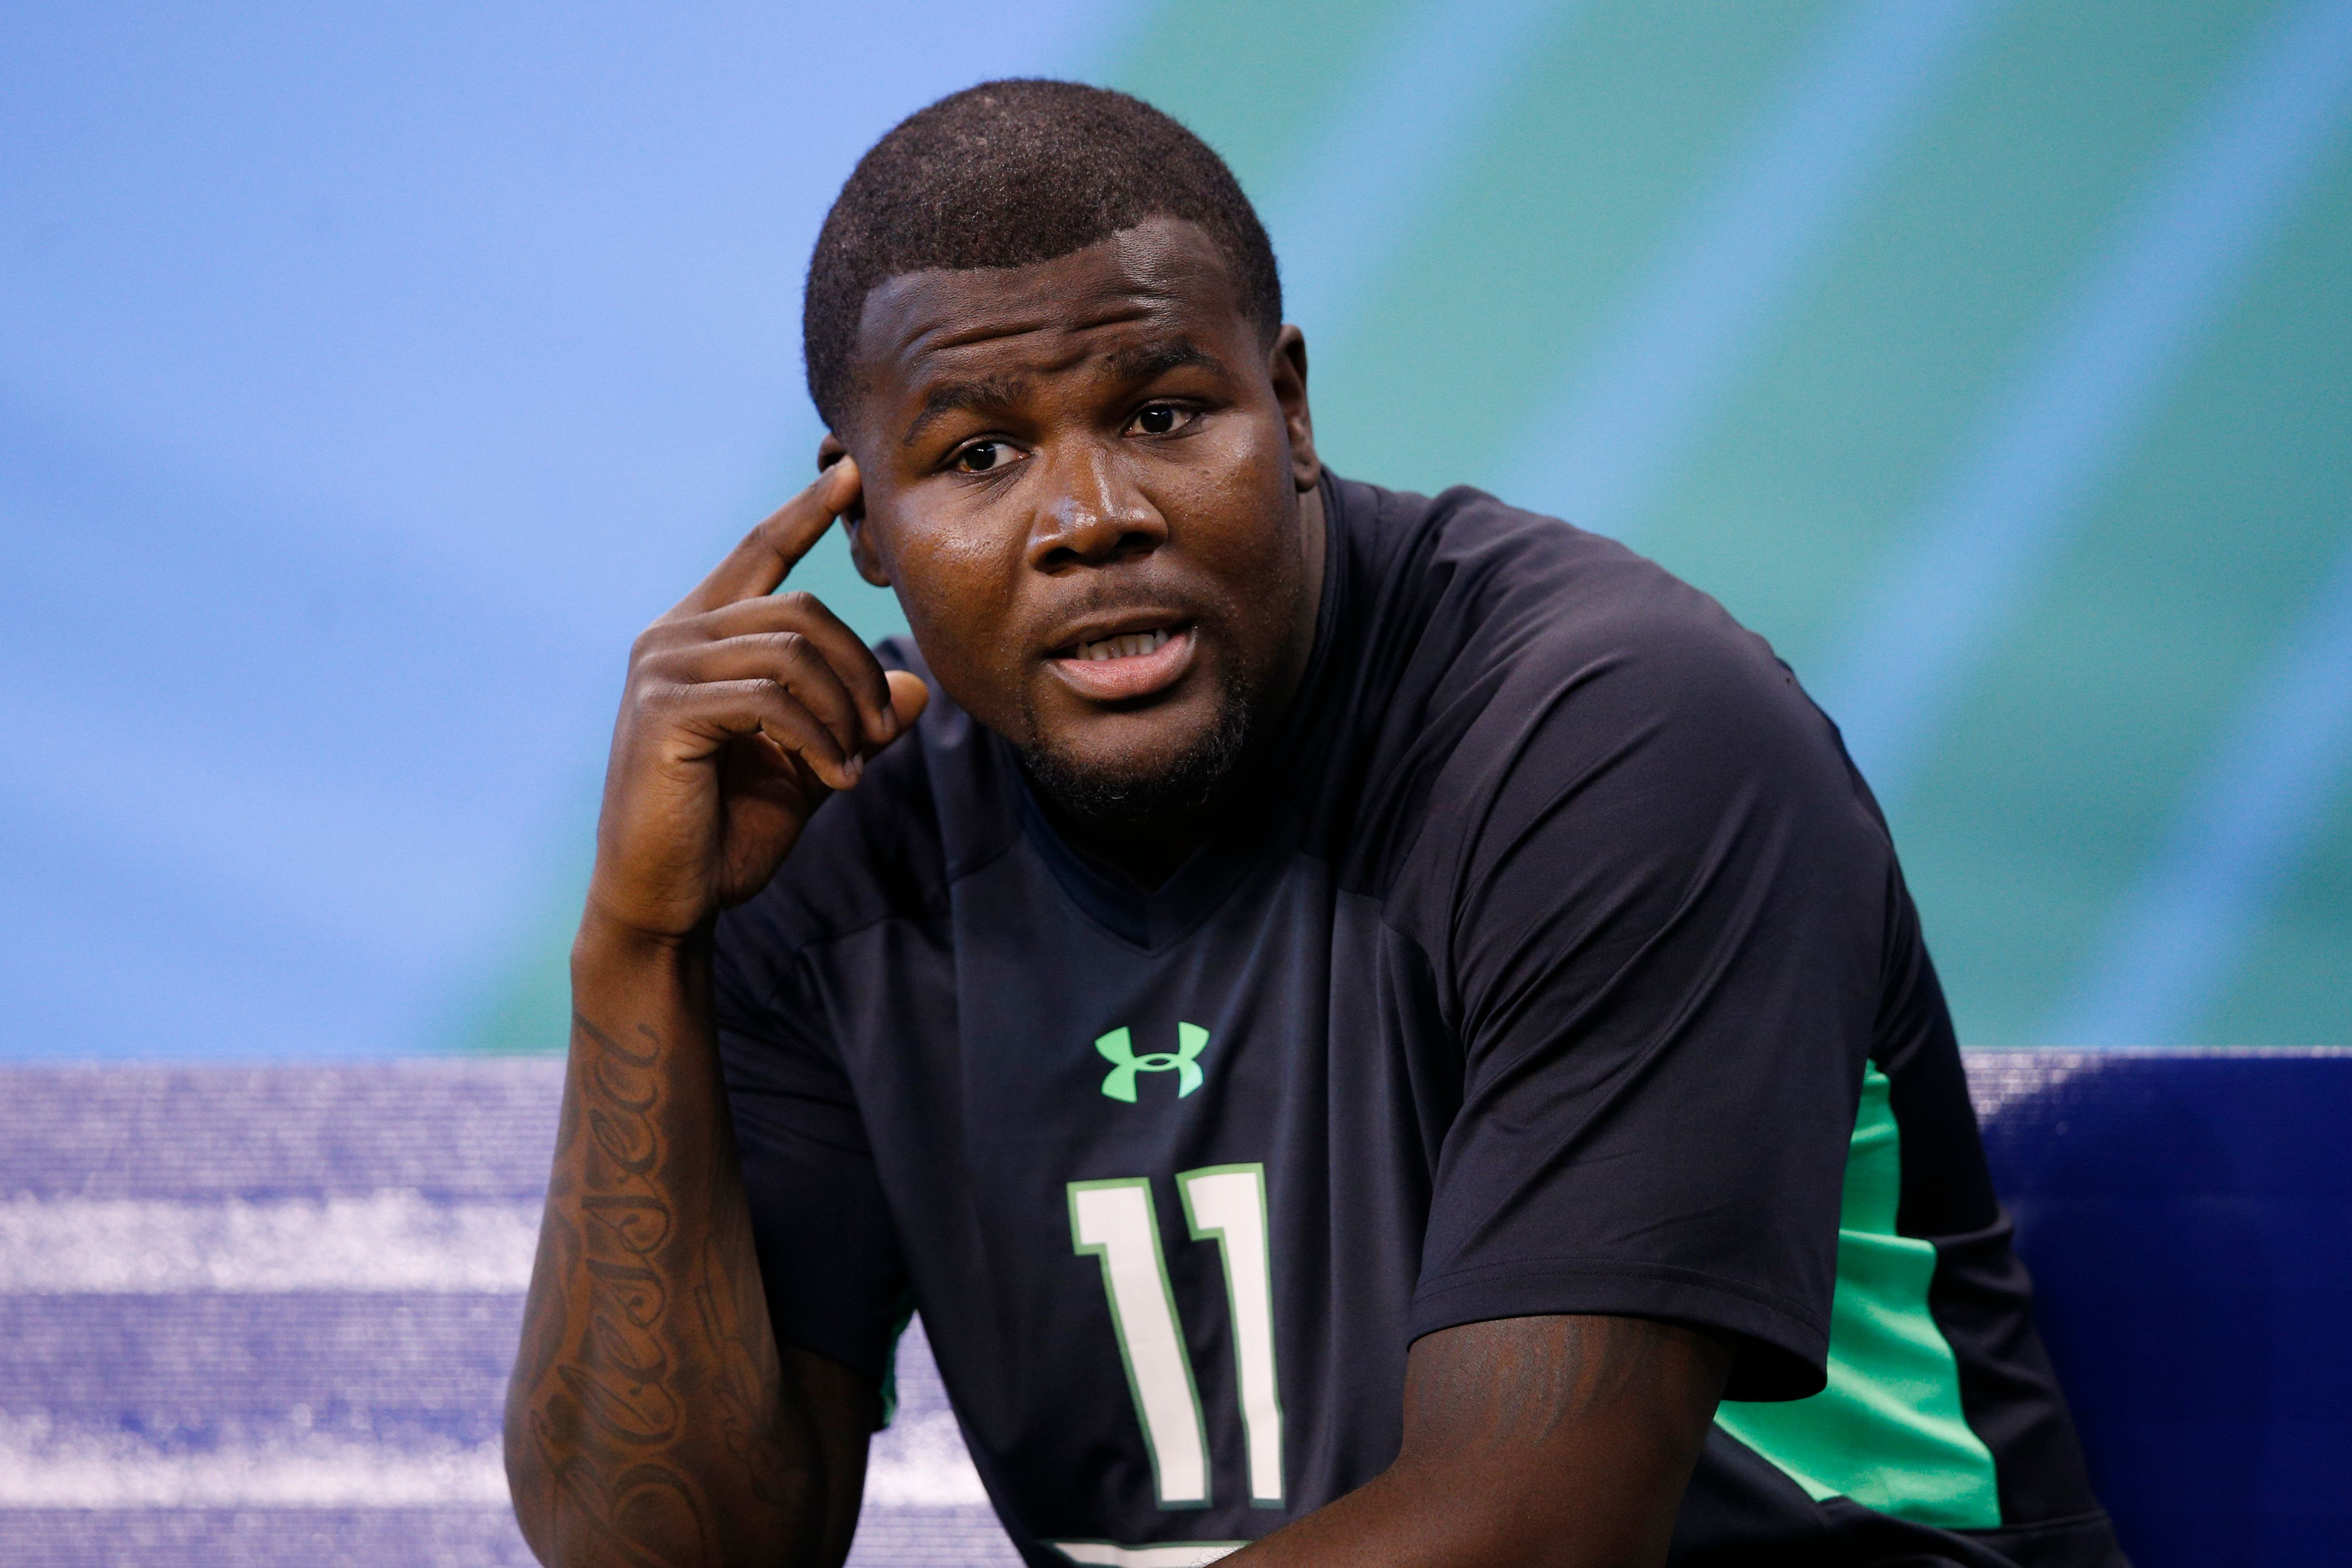 INDIANAPOLIS, IN - FEBRUARY 27: Quarterback Cardale Jones of Ohio State looks on during the 2016 NFL Scouting Combine at Lucas Oil Stadium on February 27, 2016 in Indianapolis, Indiana. (Photo by Joe Robbins/Getty Images)